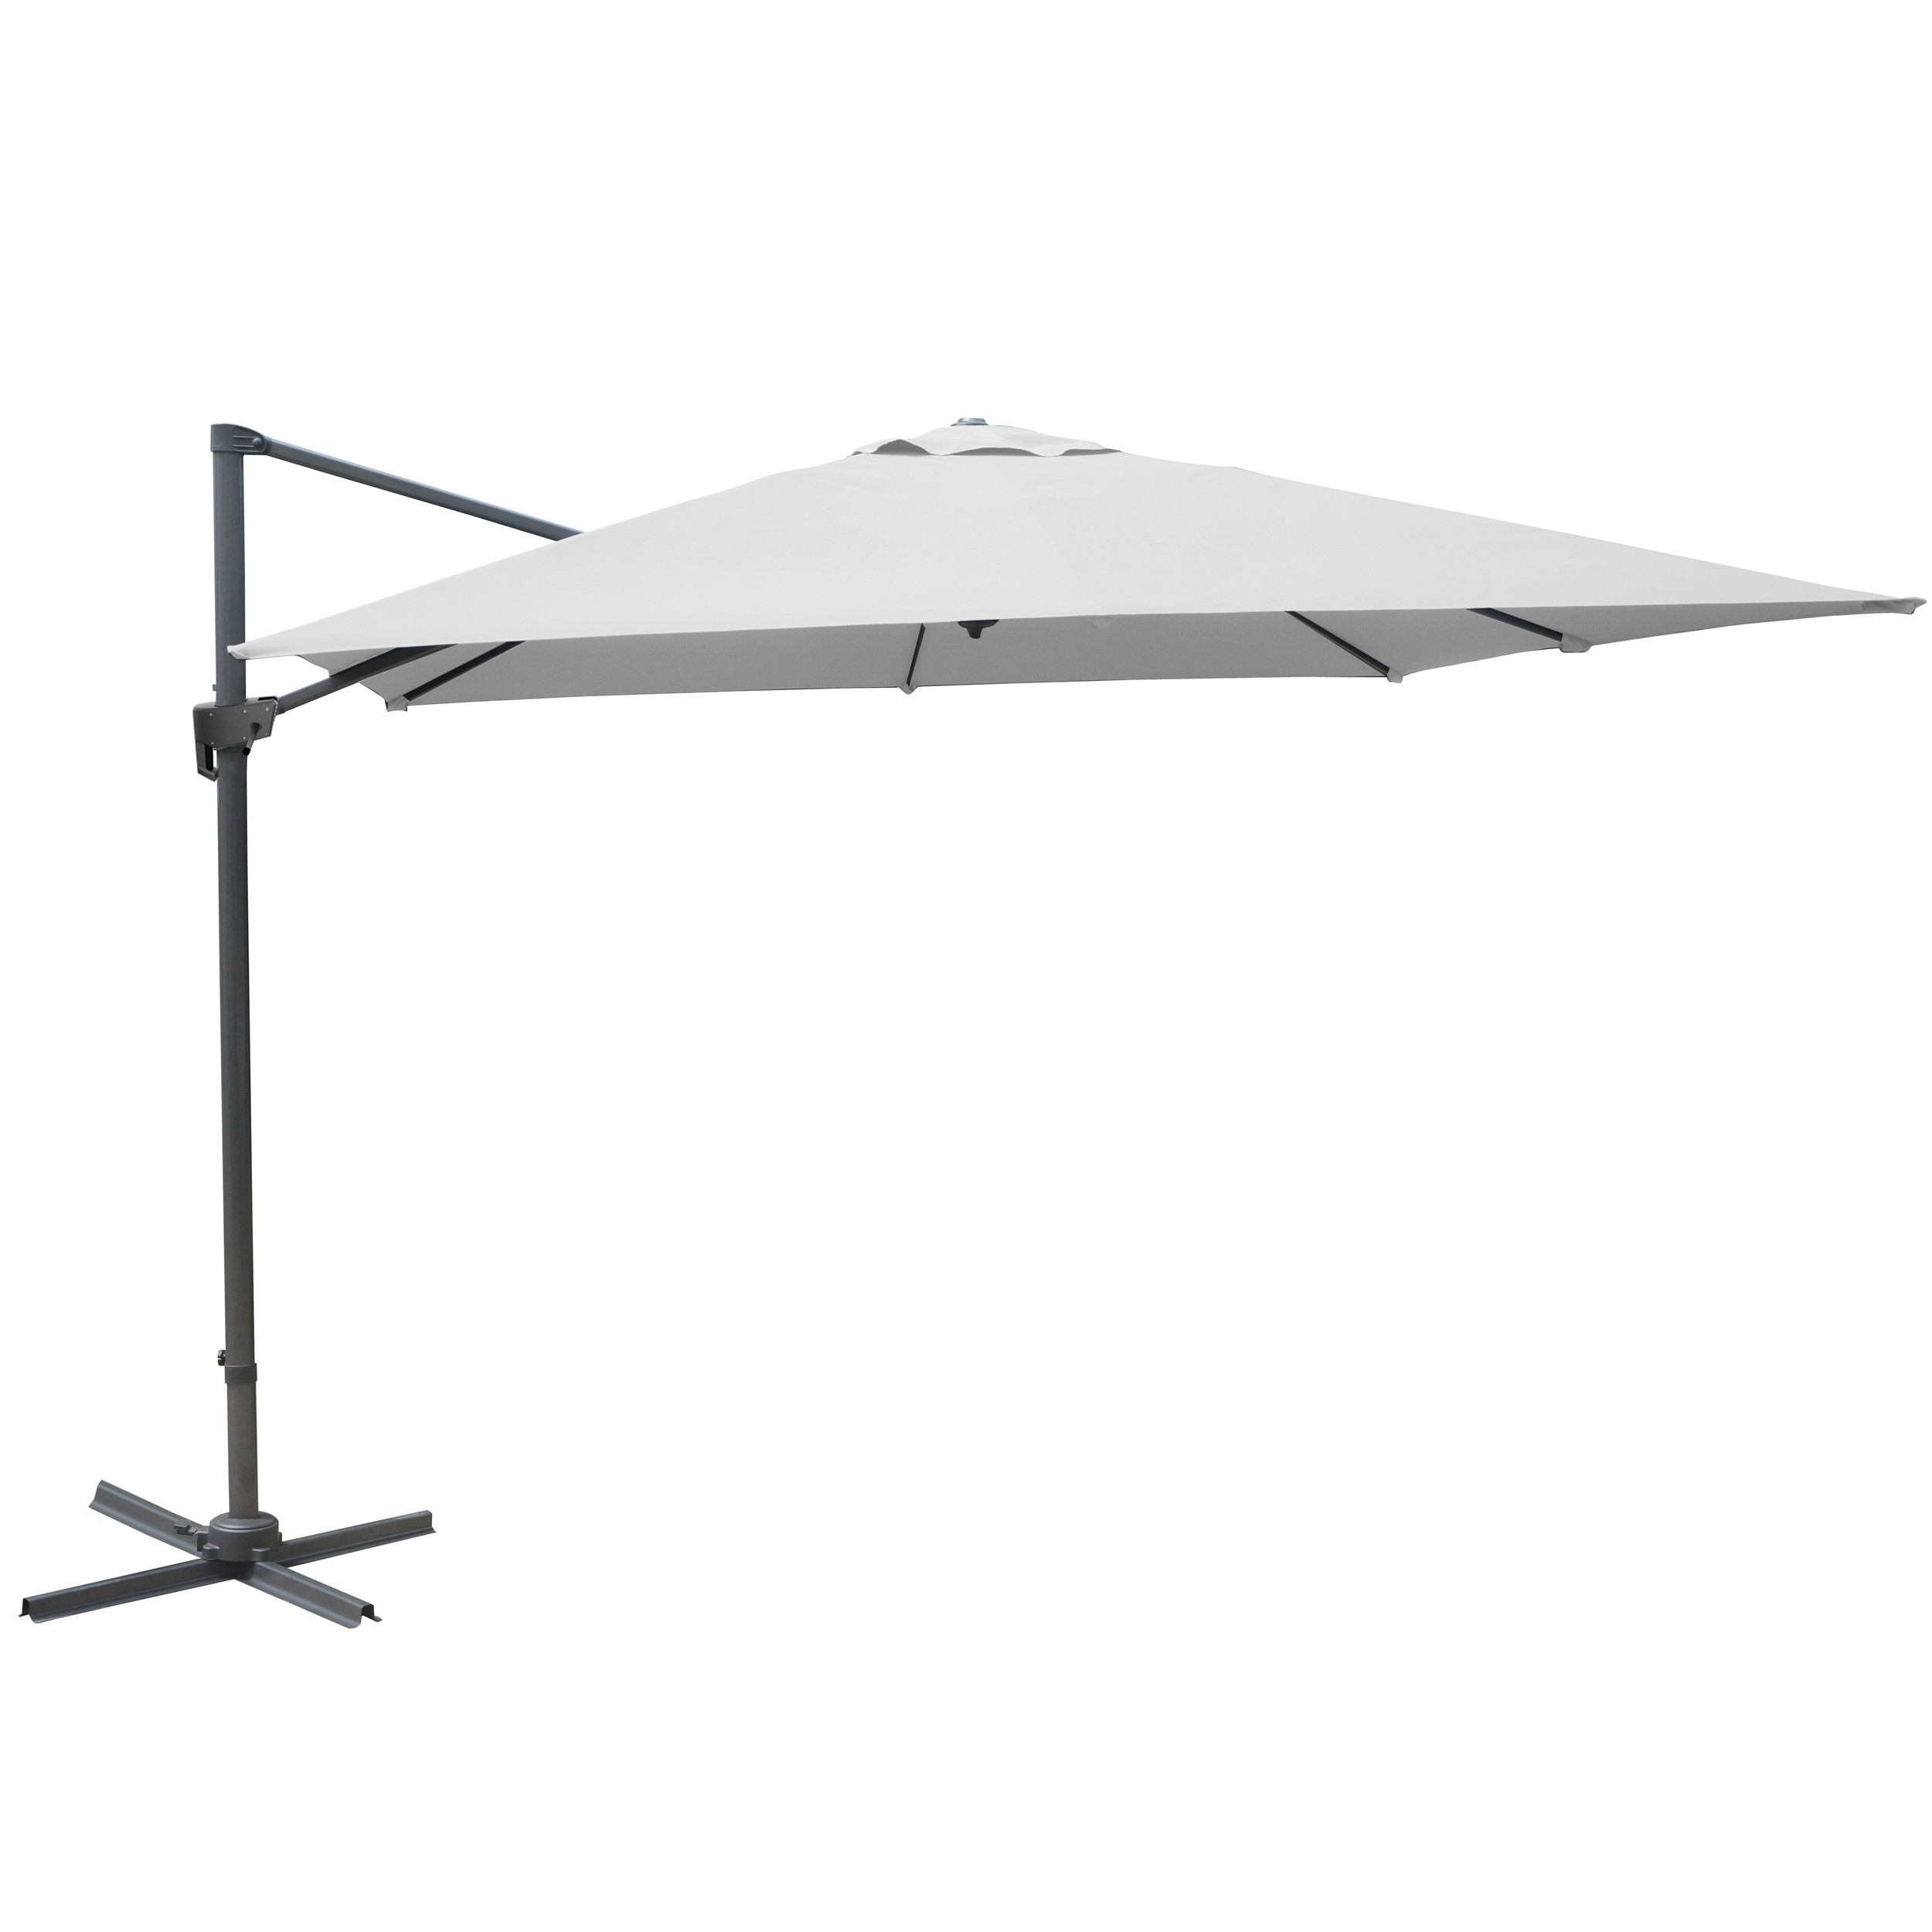 acheter parasol inclinable blanc toile